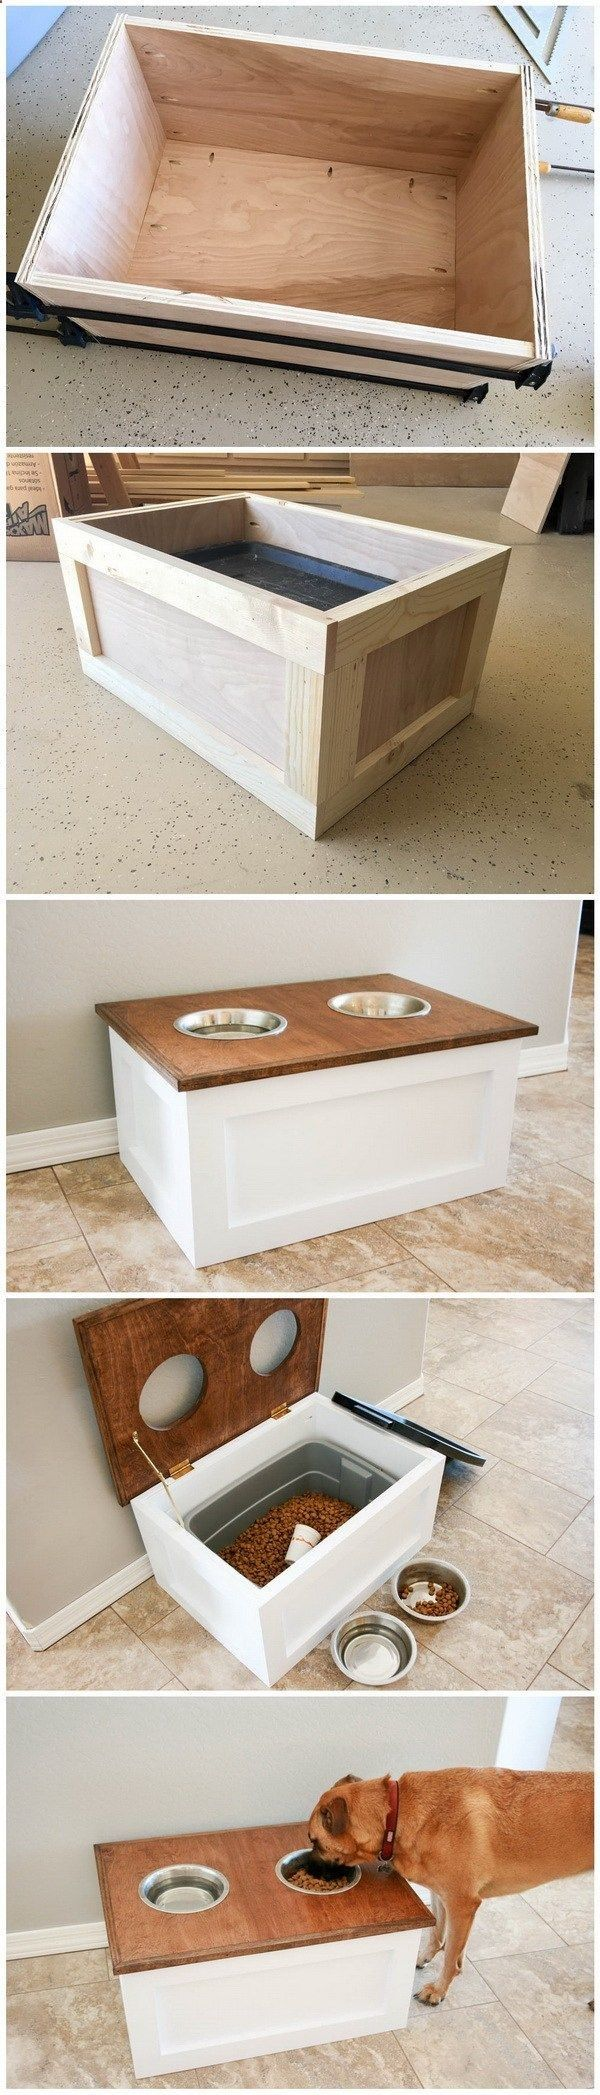 Plans of Woodworking Diy Projects DIY